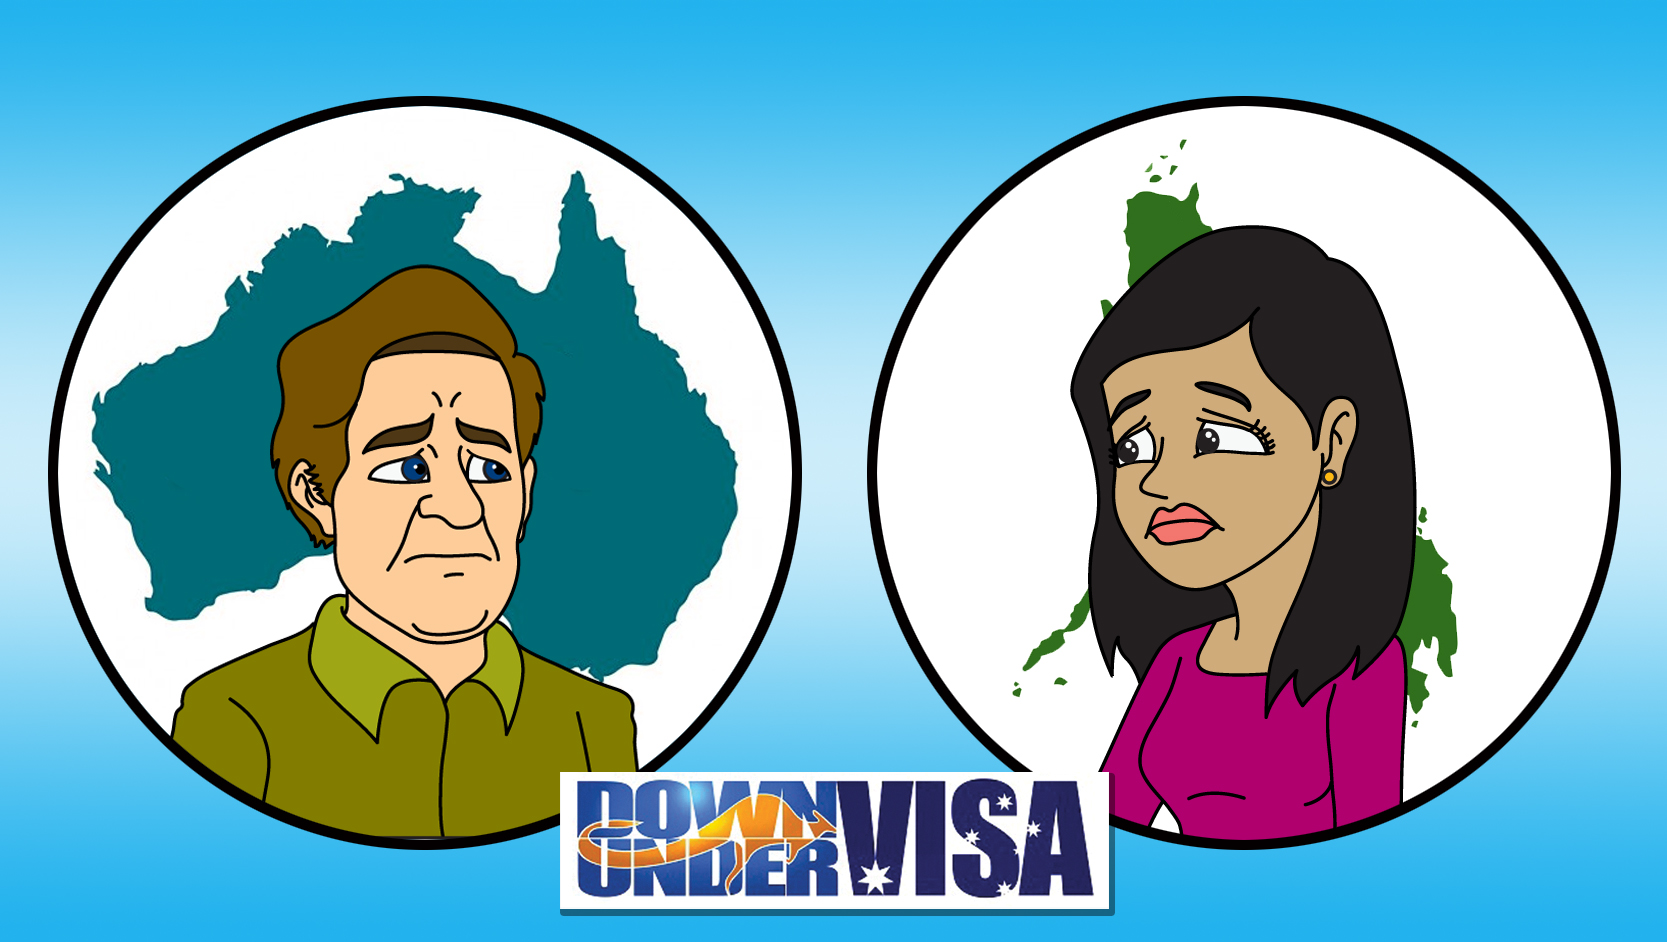 Tourist visa from Philippines to Australia but the Australian and Filipina haven't met in person yet